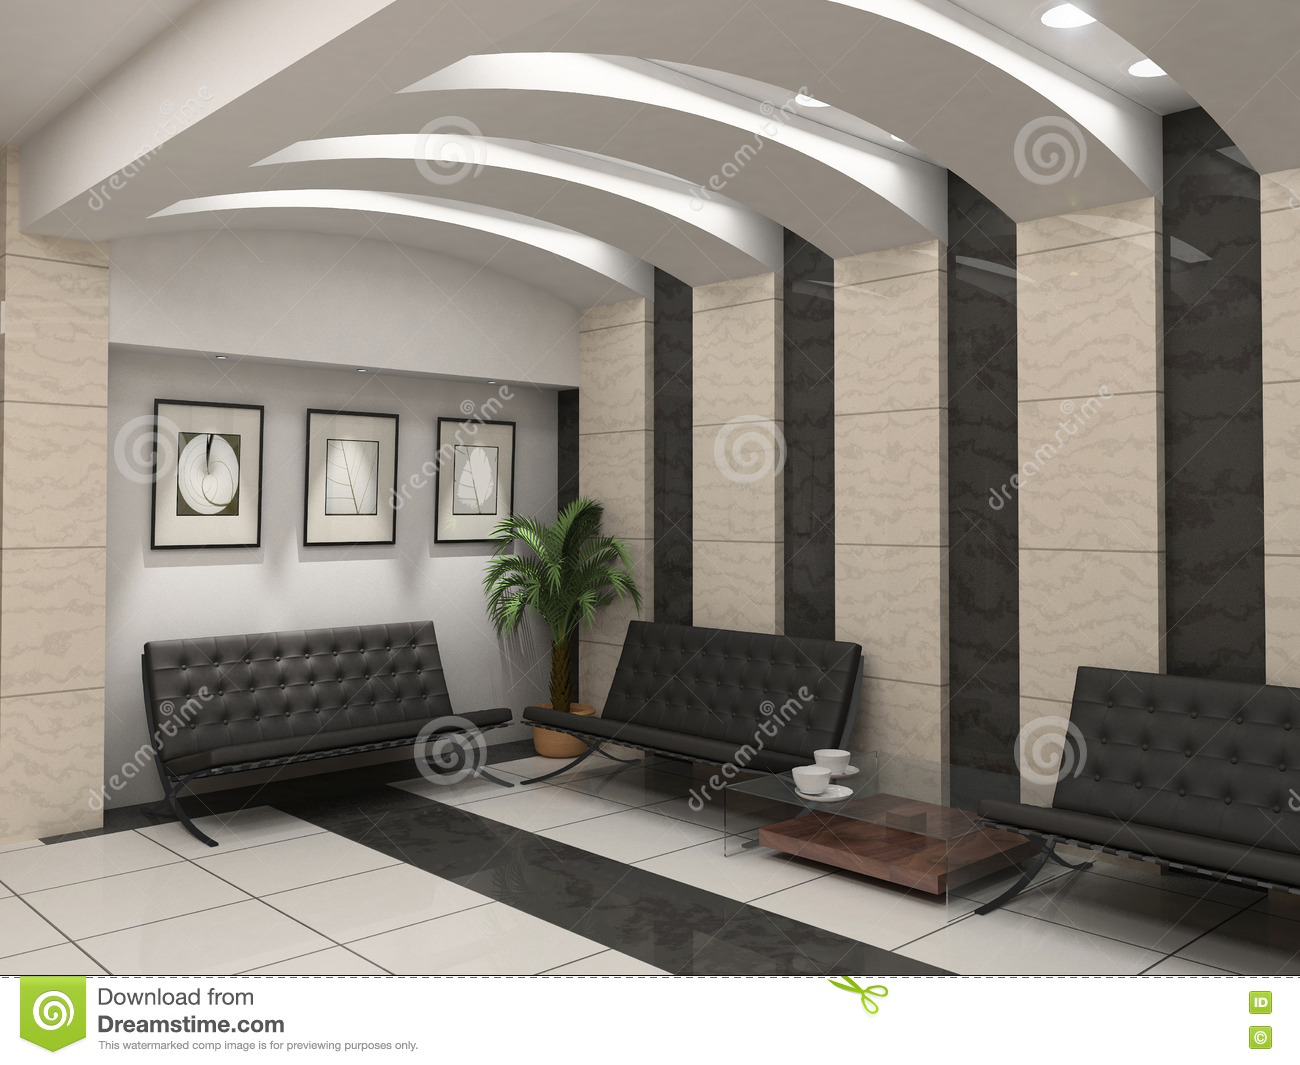 Foyer Architecture : Modern foyer interior stock illustration of